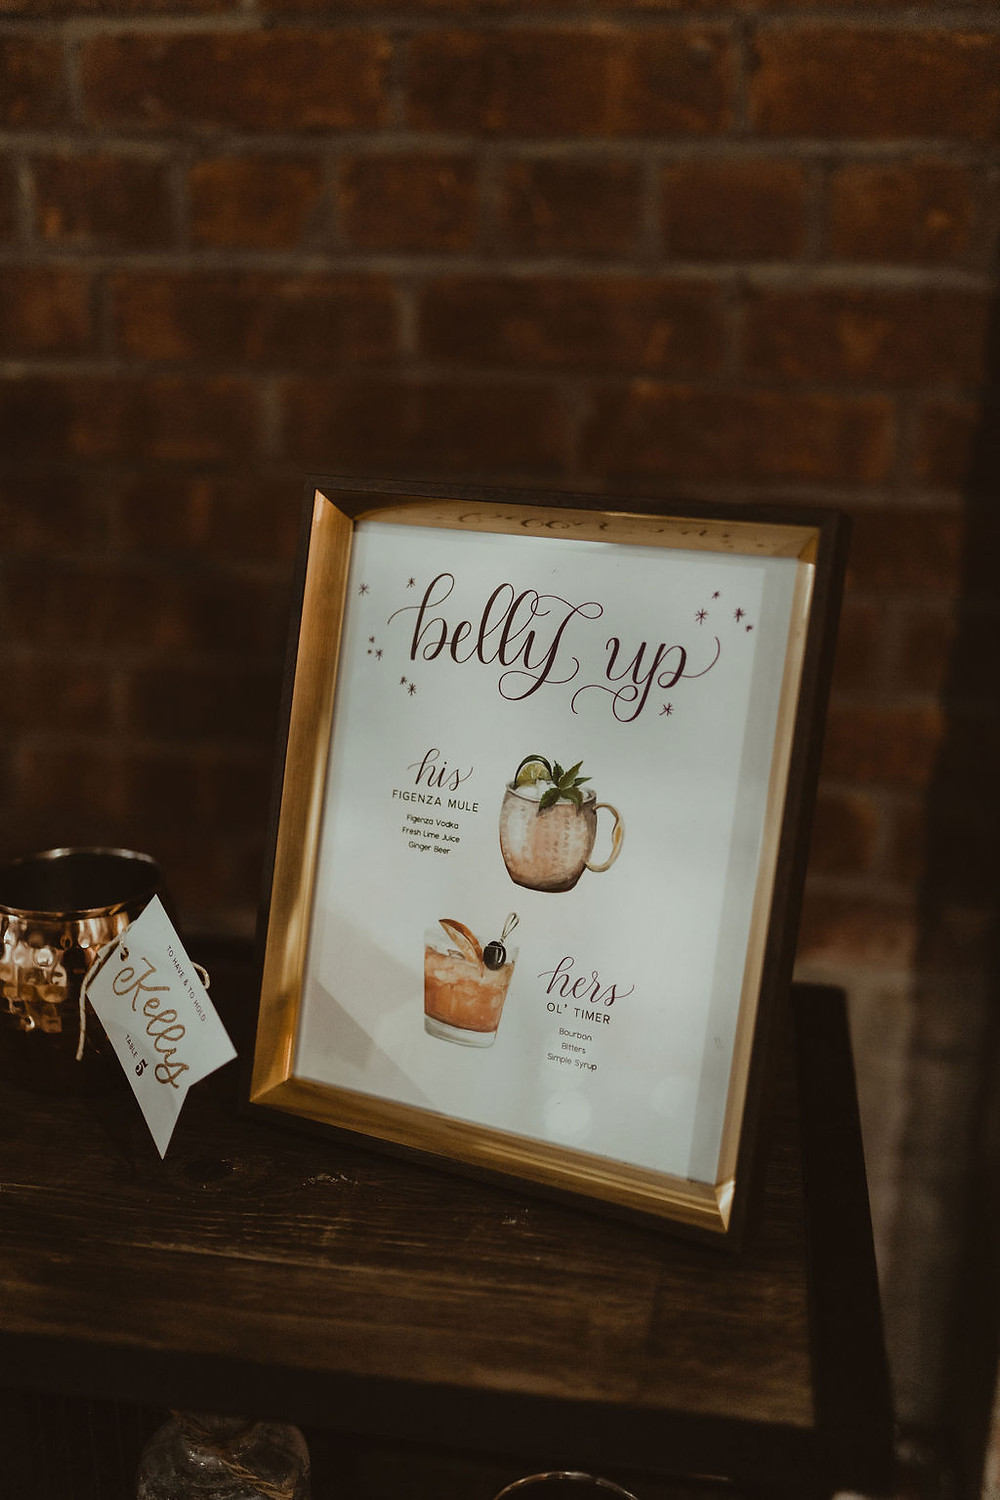 Wedding Drink Sign: Industrial & Copper Styled Wedding Shoot at Smith's Market featured on Pretty Little Vintage Co.